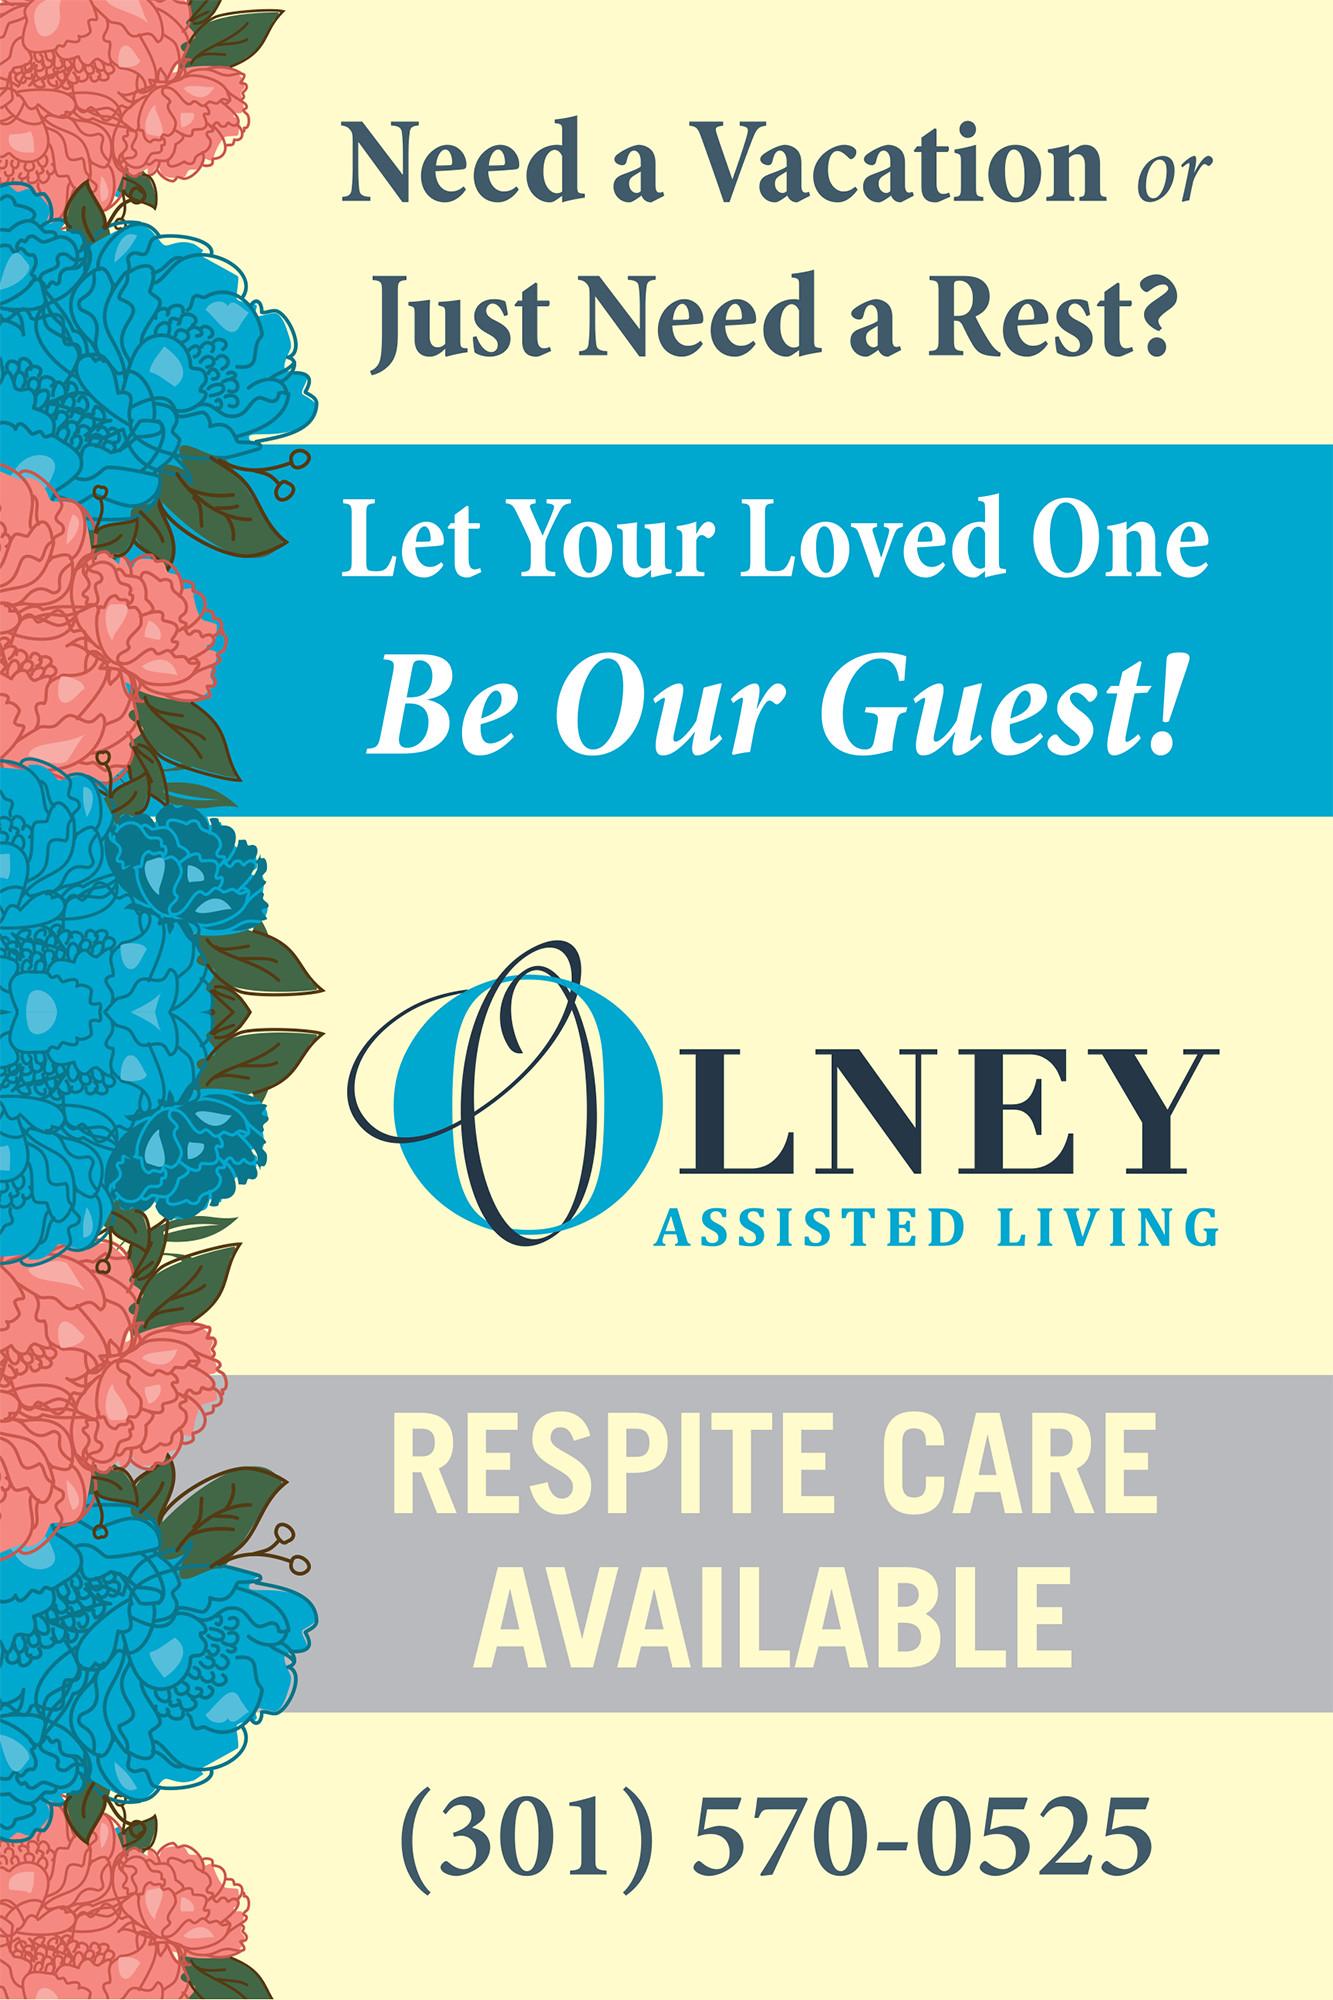 Poster to promote Olney Assisted Living's Respite Care services